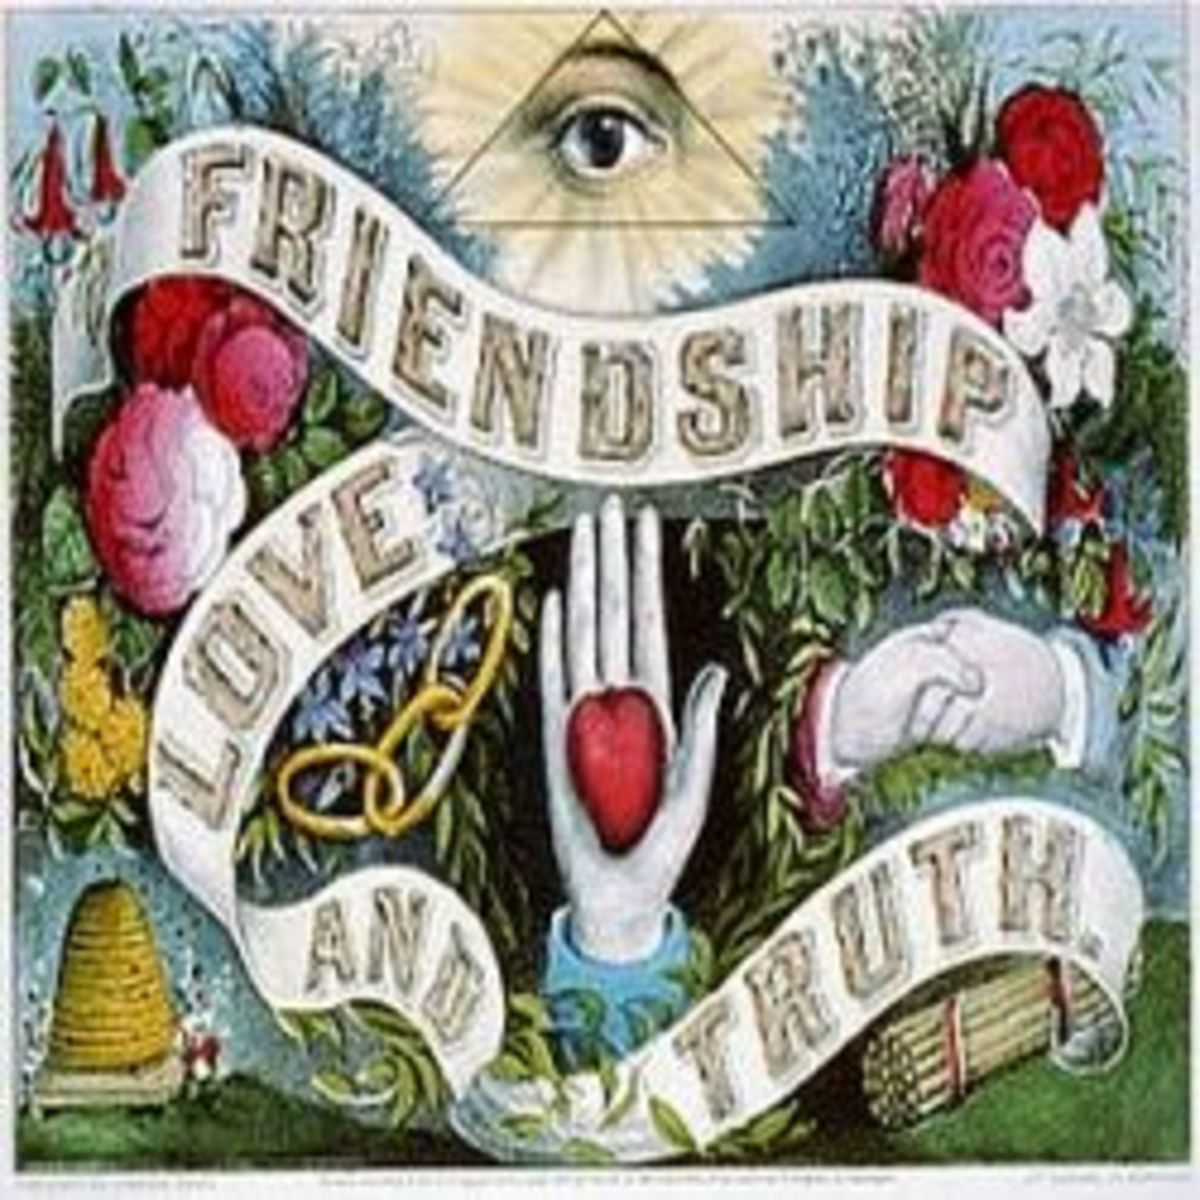 Currier & Ives--Friendship love and truth Image